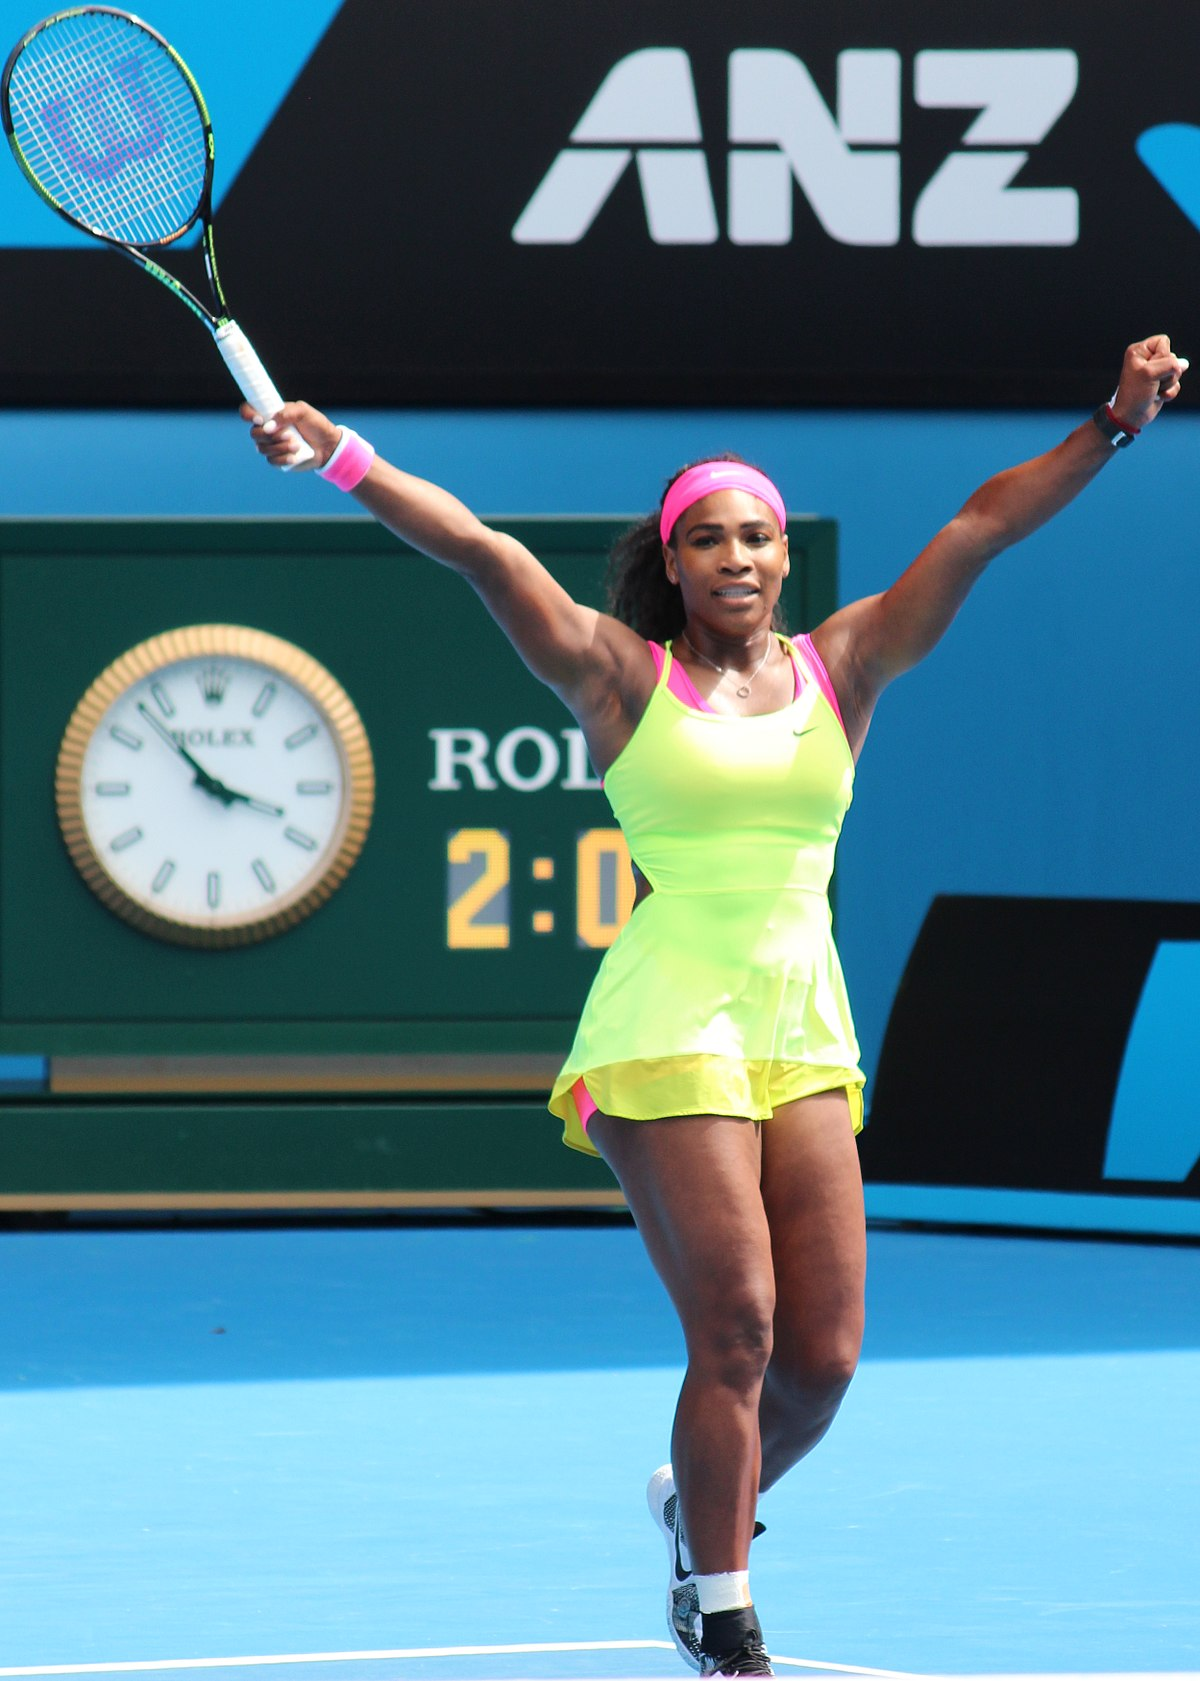 2015 Serena Williams tennis season